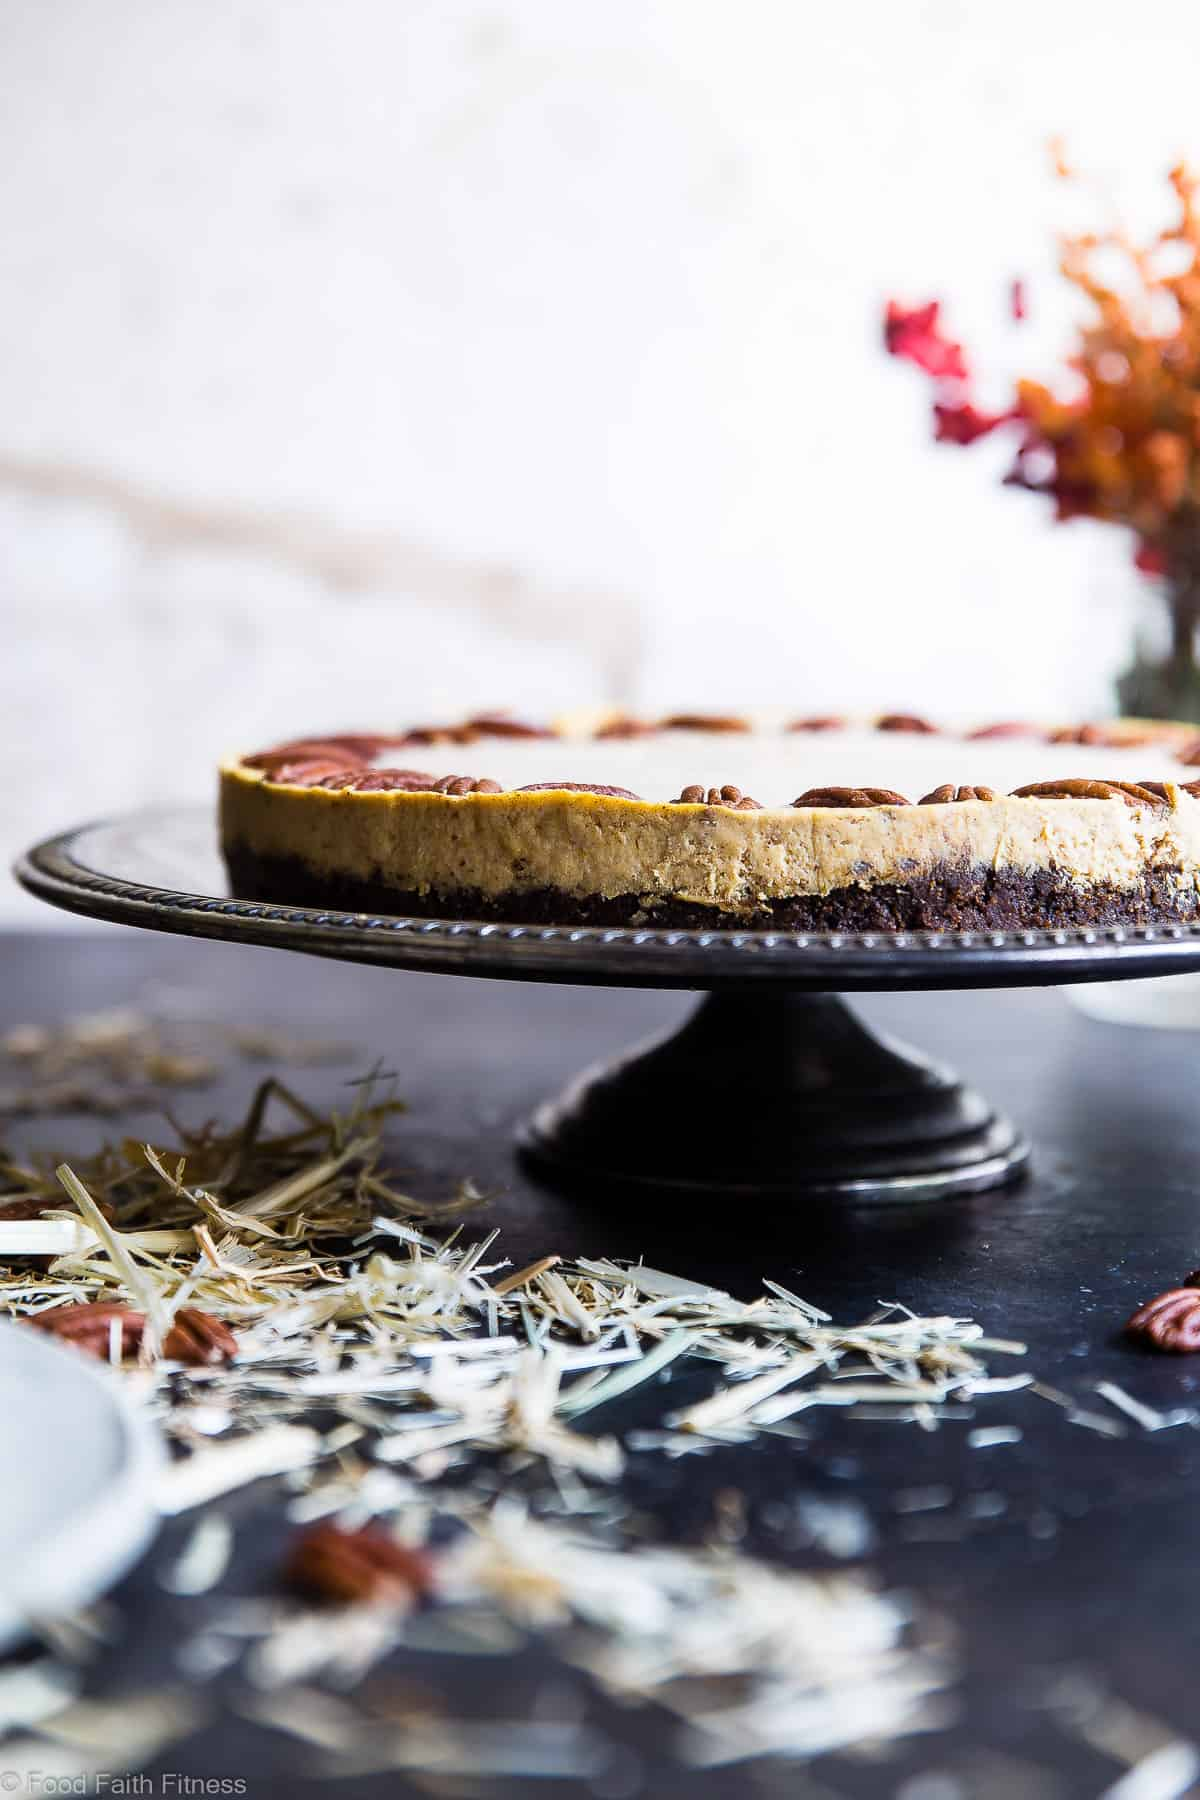 Low Carb Keto Pumpkin Cheesecake - This healthy low carb pumpkin cheesecakeis SO creamy and spicy-sweet you will never believe it's gluten, grain and sugar free and only 240 calories! The BEST fall dessert ever! | #Foodfaithfitness | #Glutenfree #Keto #Lowcarb #Pumpkin #Sugarfree